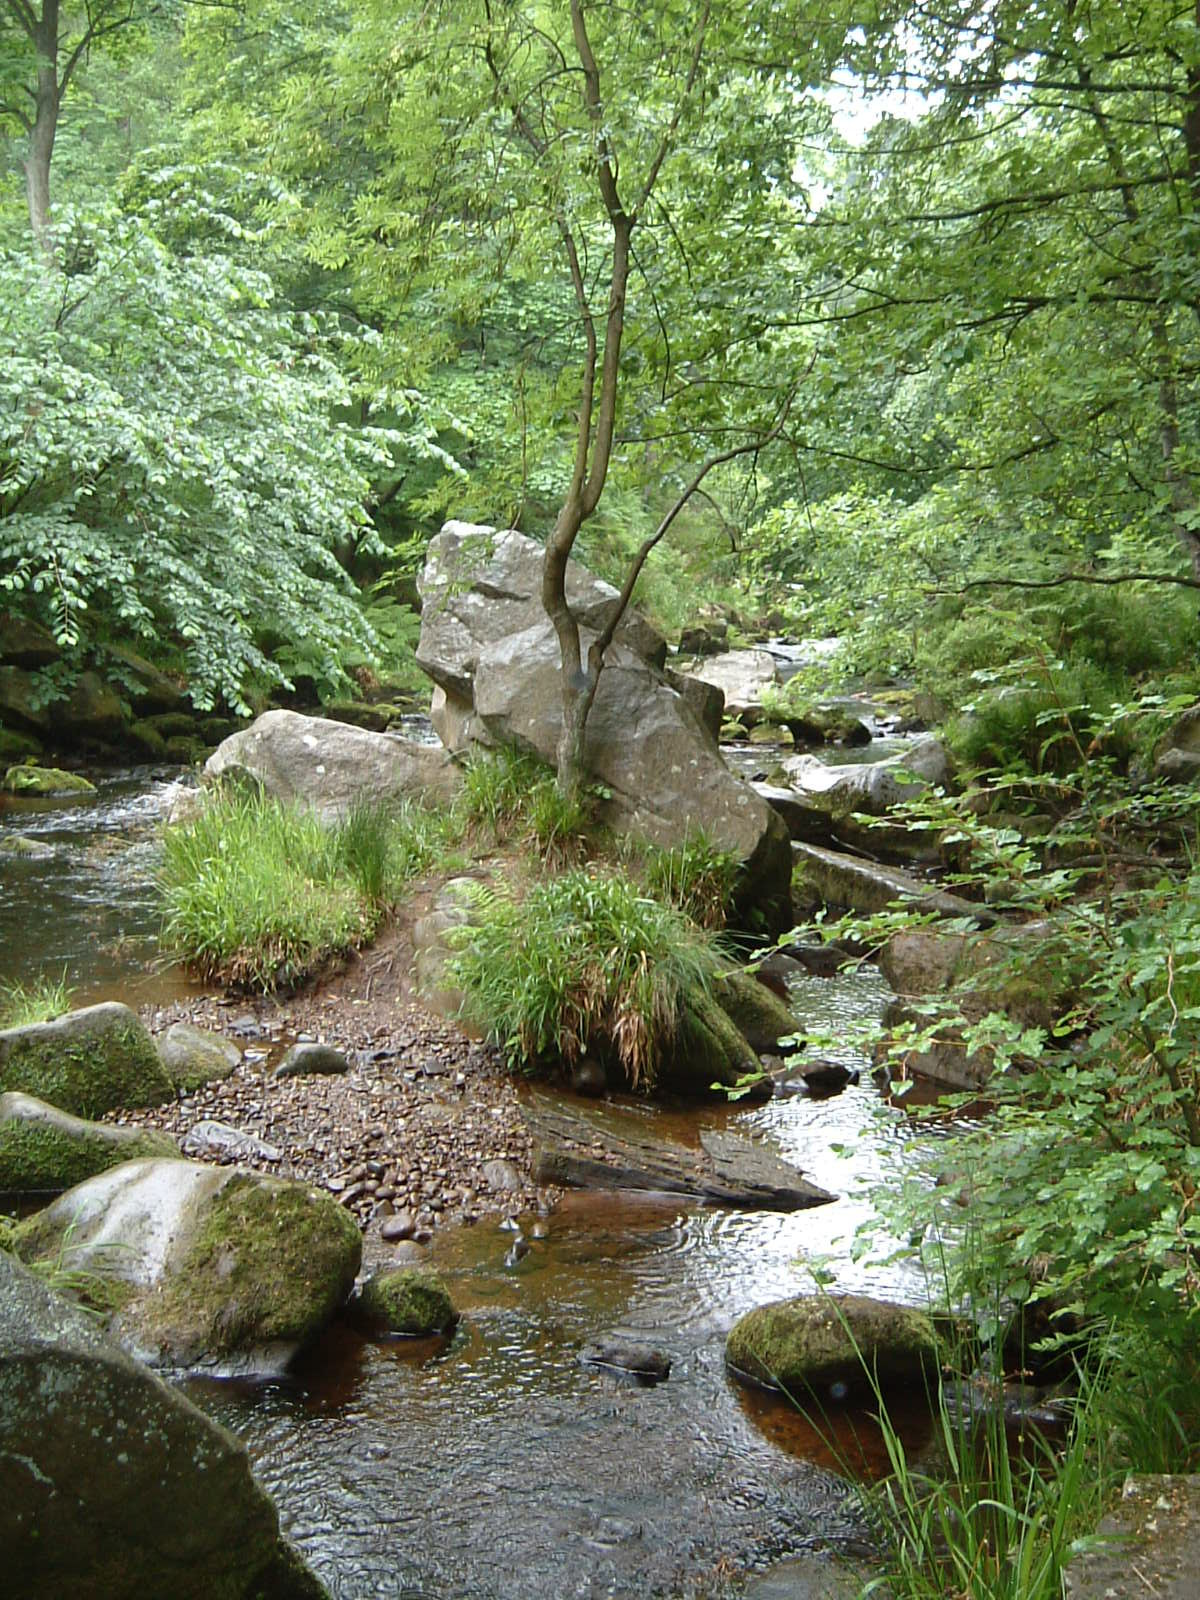 Hardcastle Crags